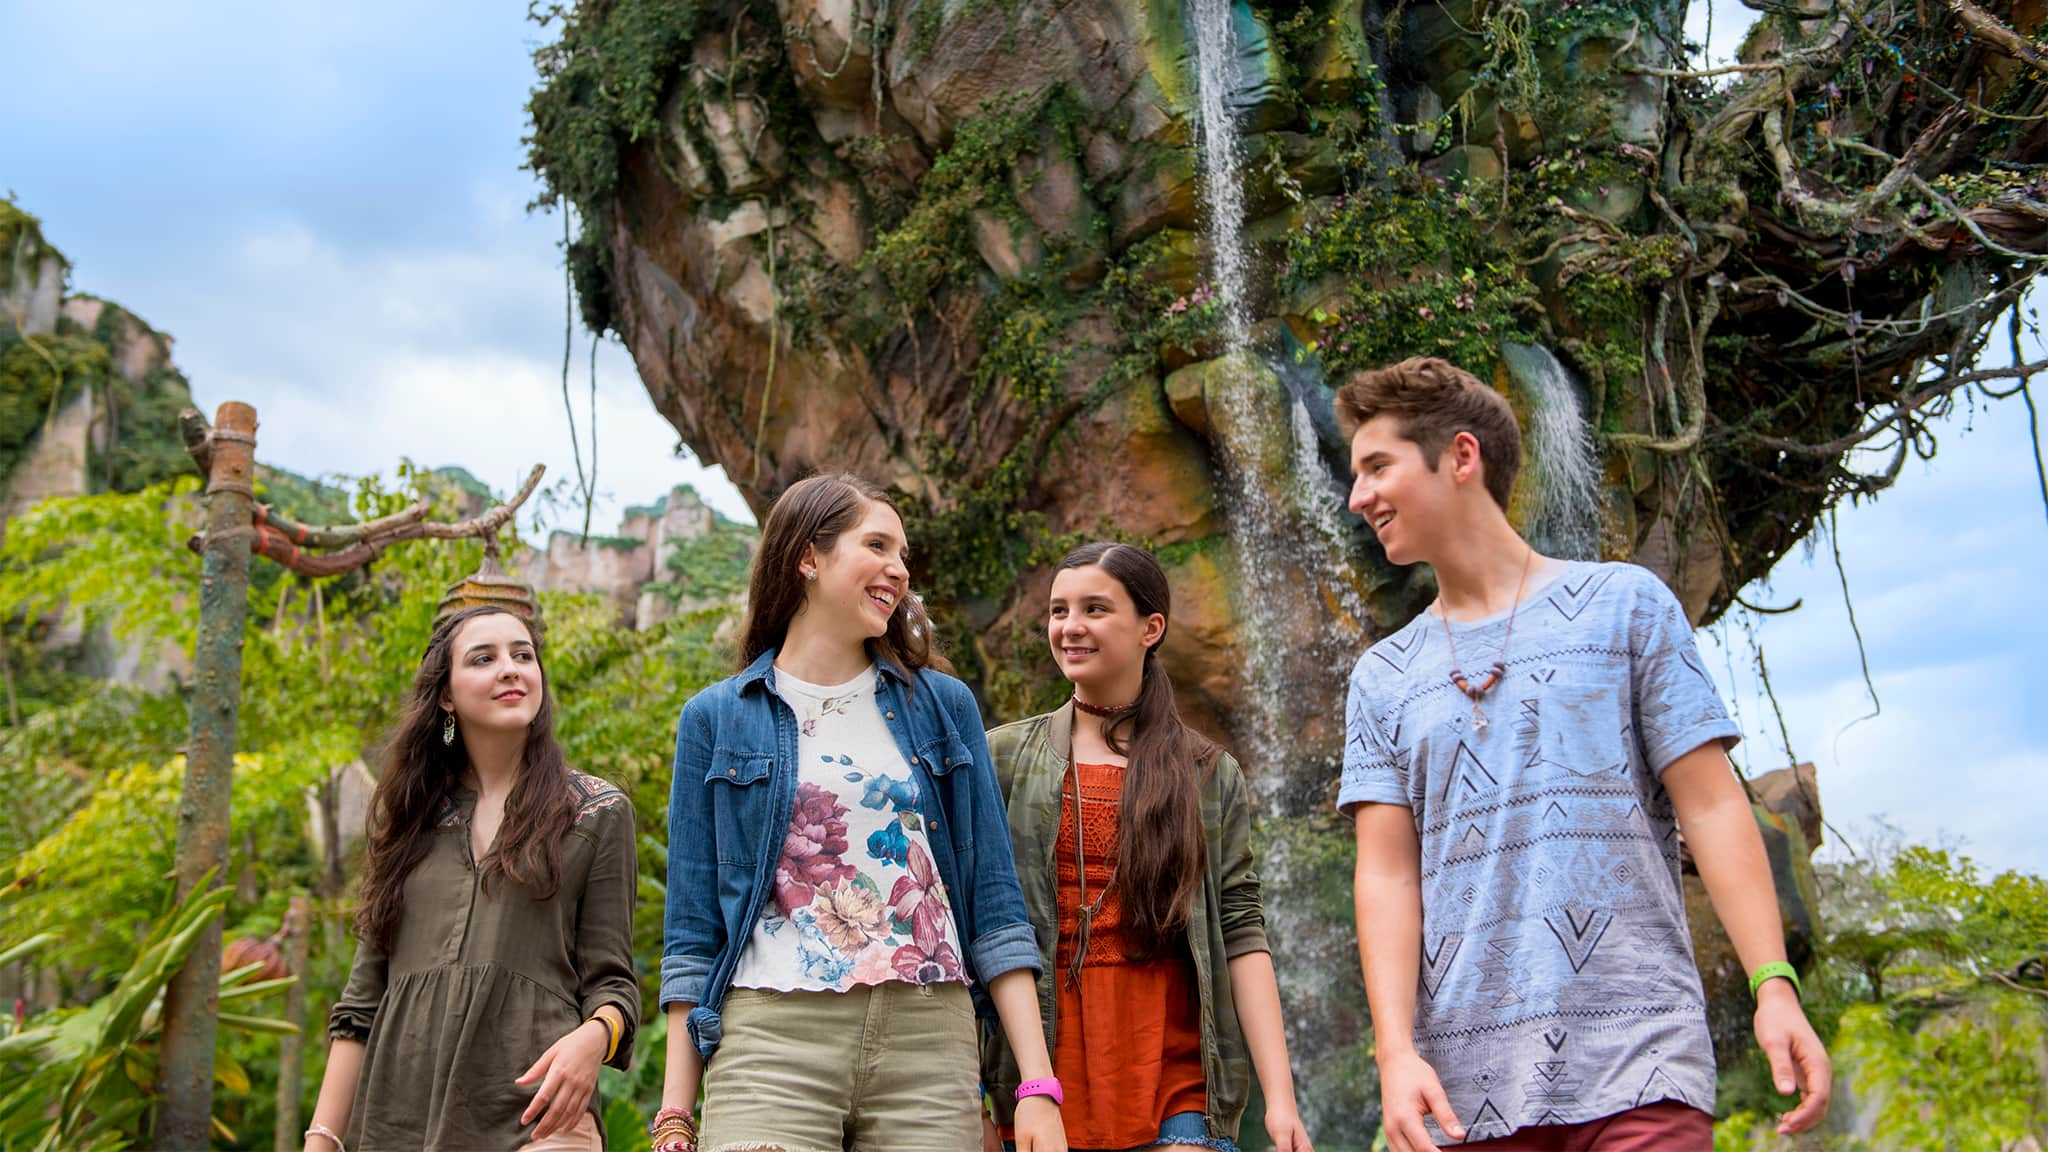 Three young women and a young man in front of a tall rock formation streaming with cascades of water